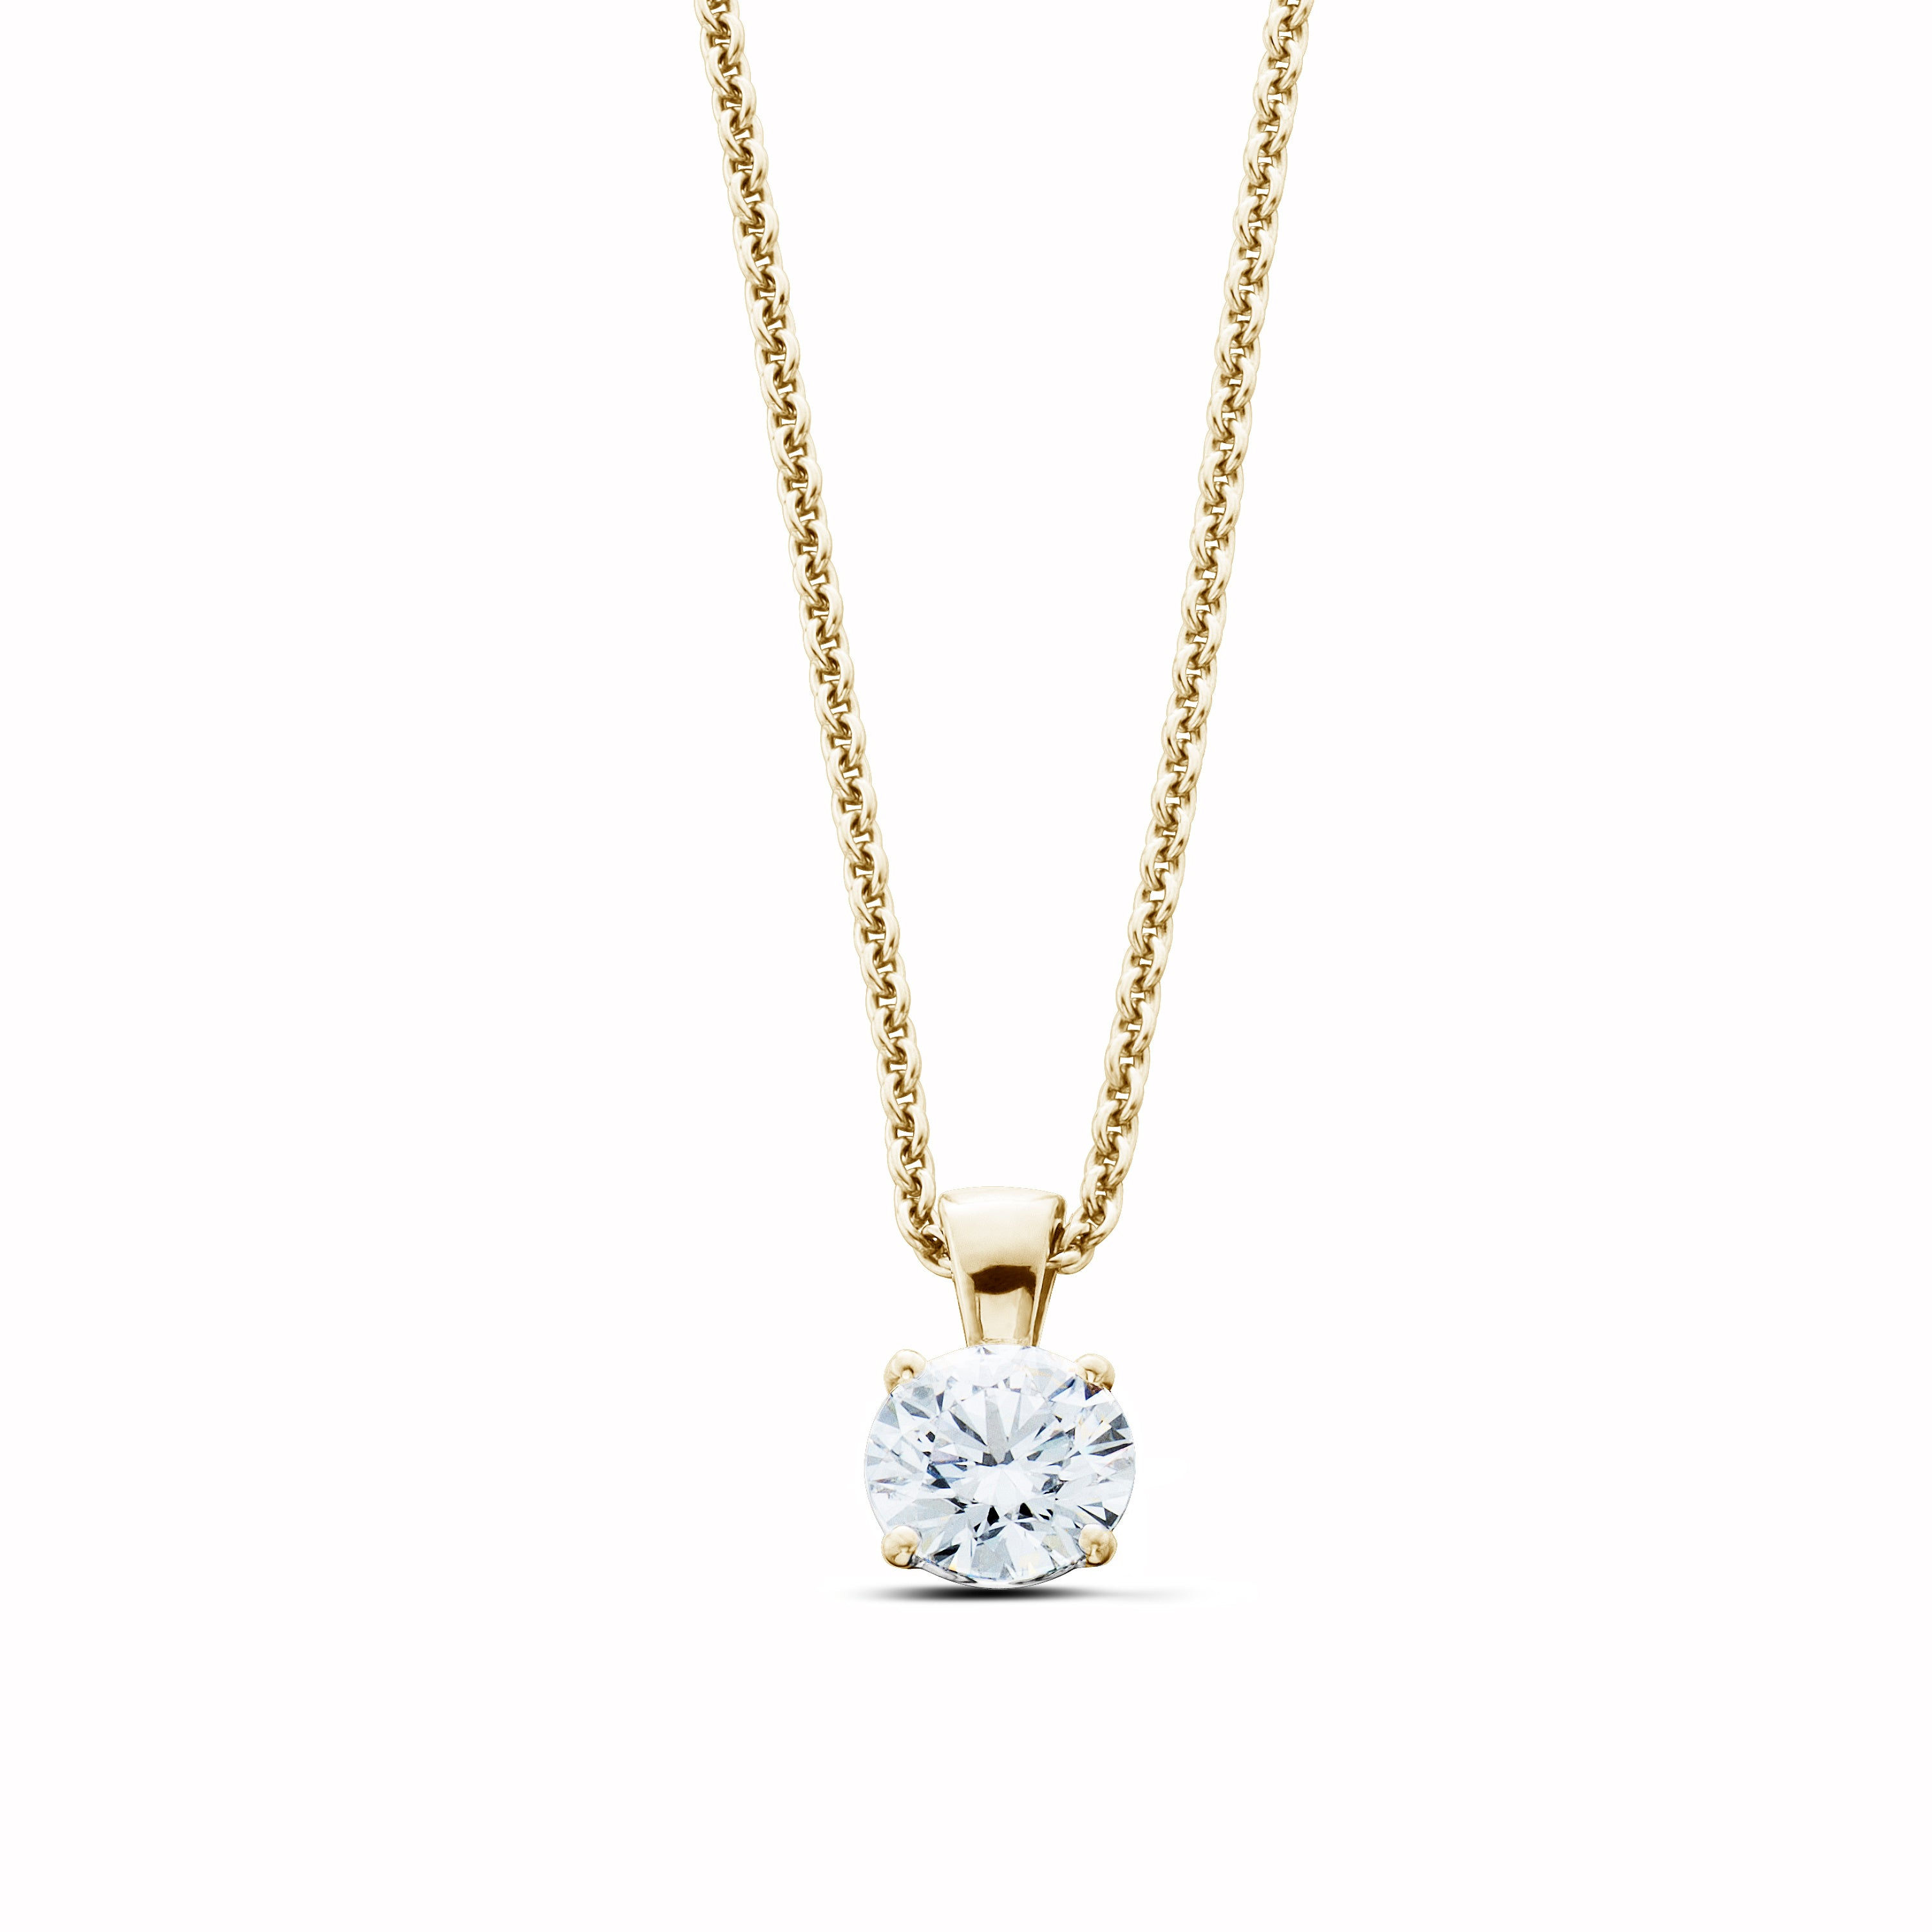 14K Gold 1.00CT Lab-Grown Diamond Solitaire Pendant